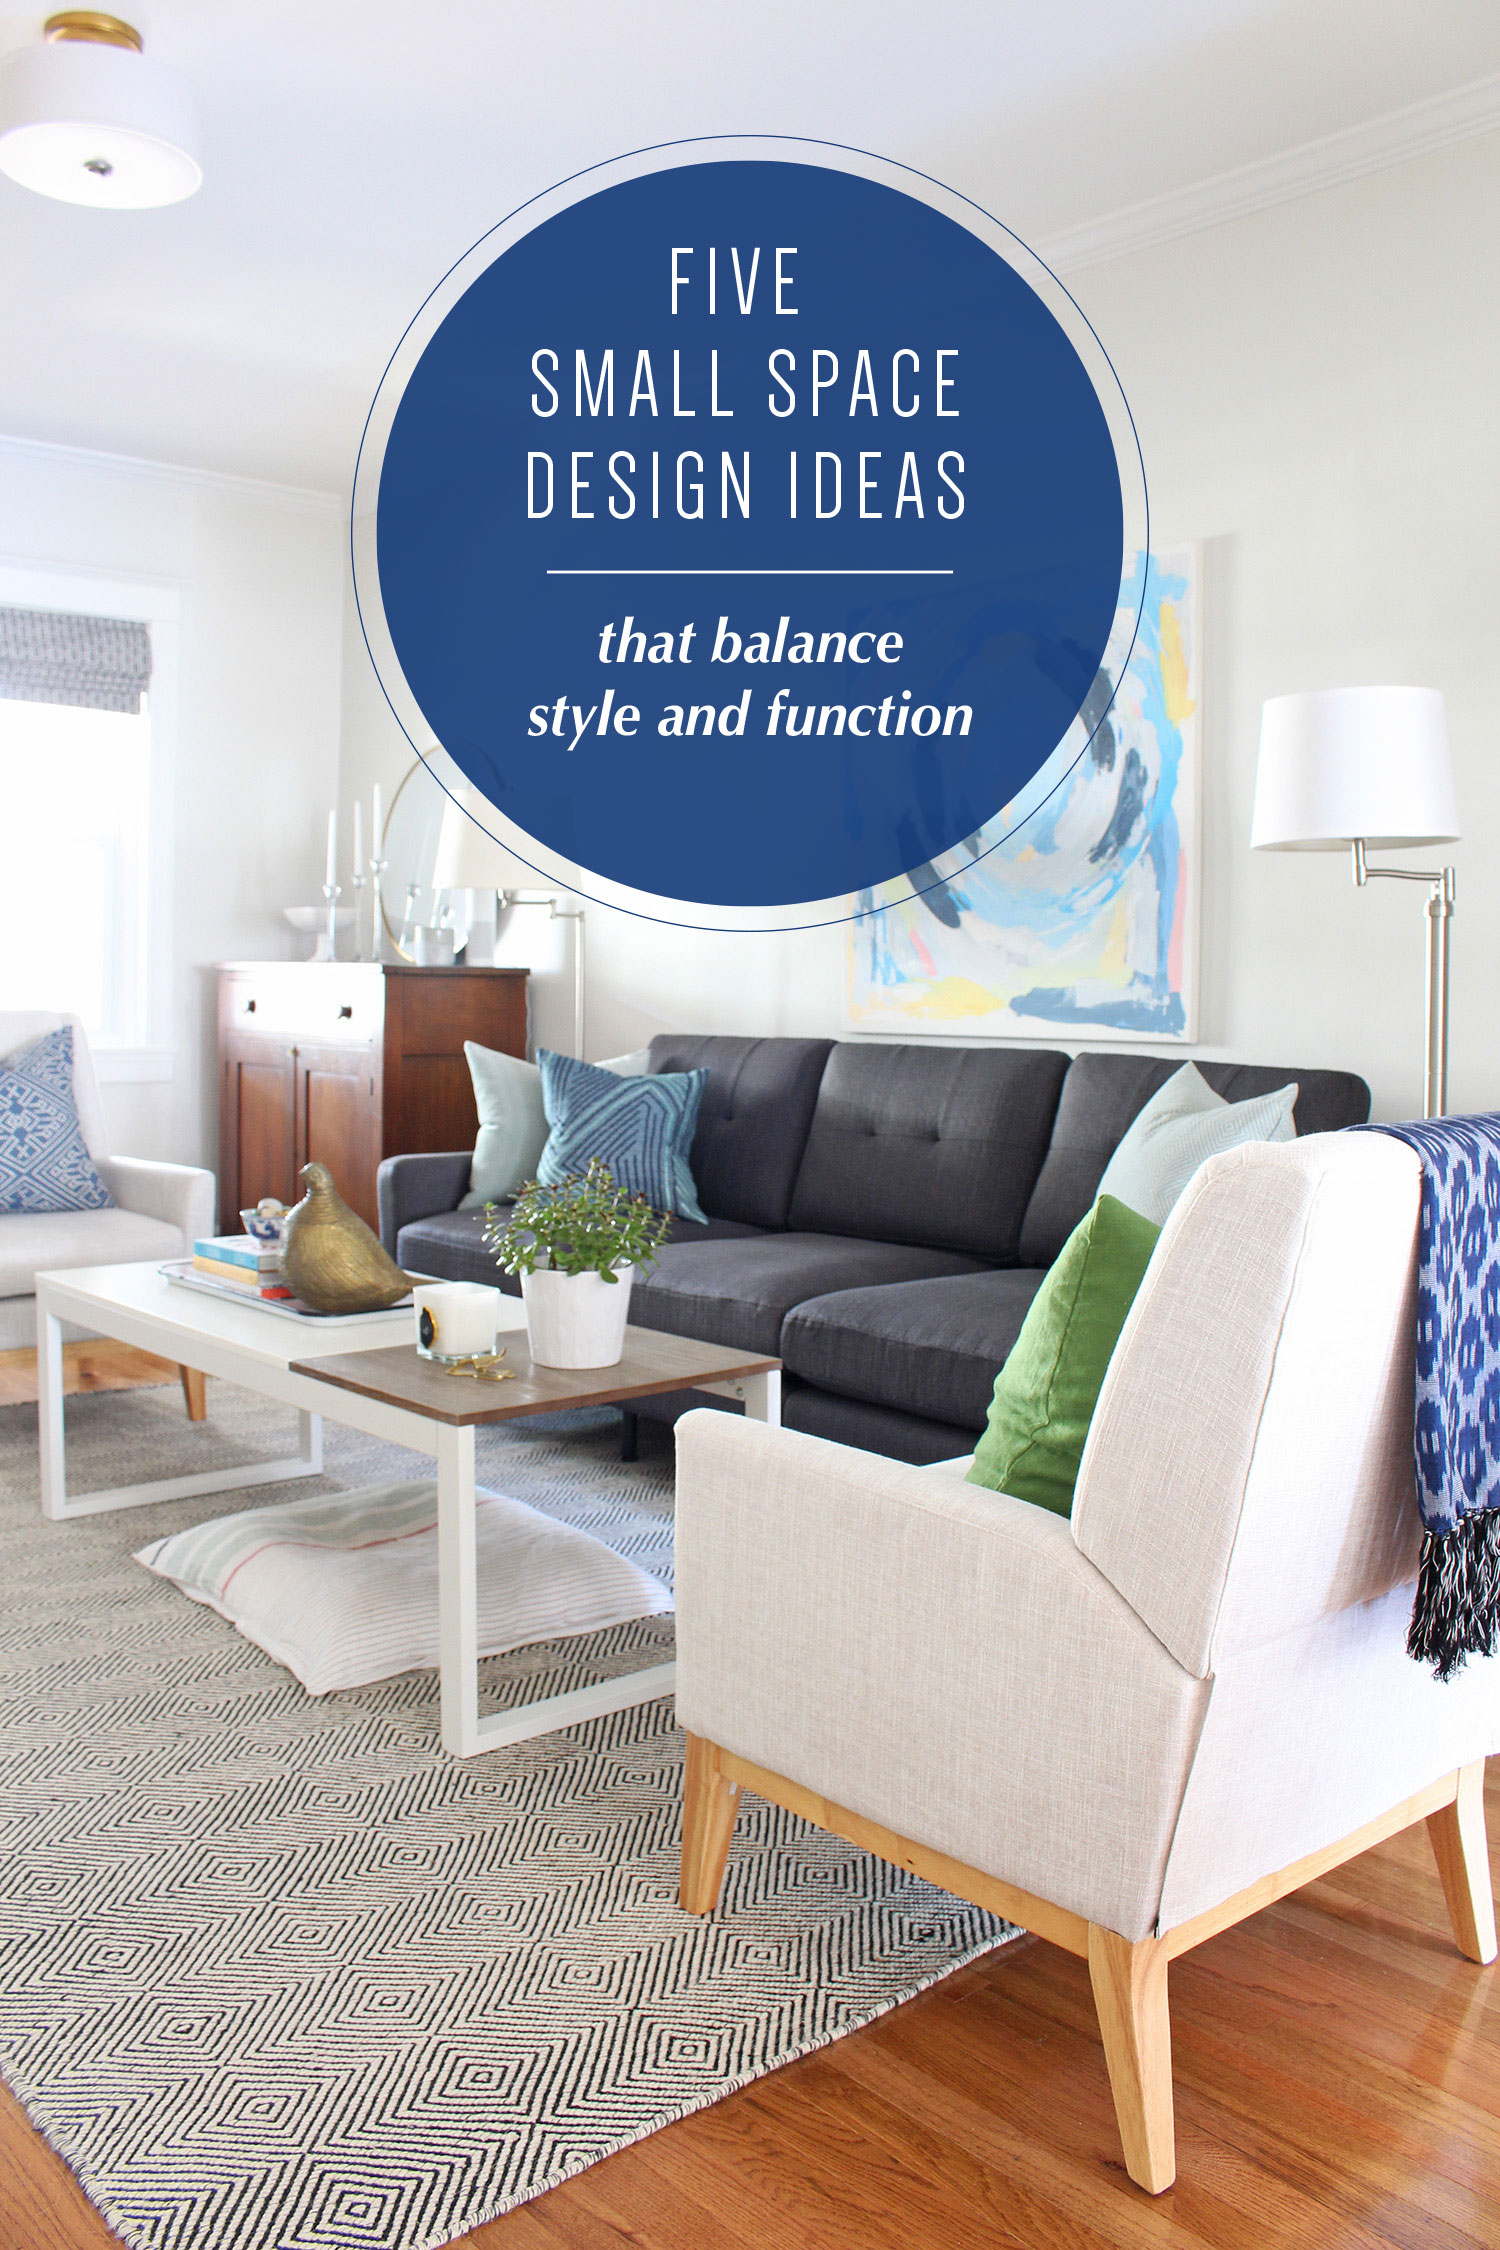 Five small space design ideas that balance style and function. Decorate your home in a smart and beautiful way - even if it's tiny!